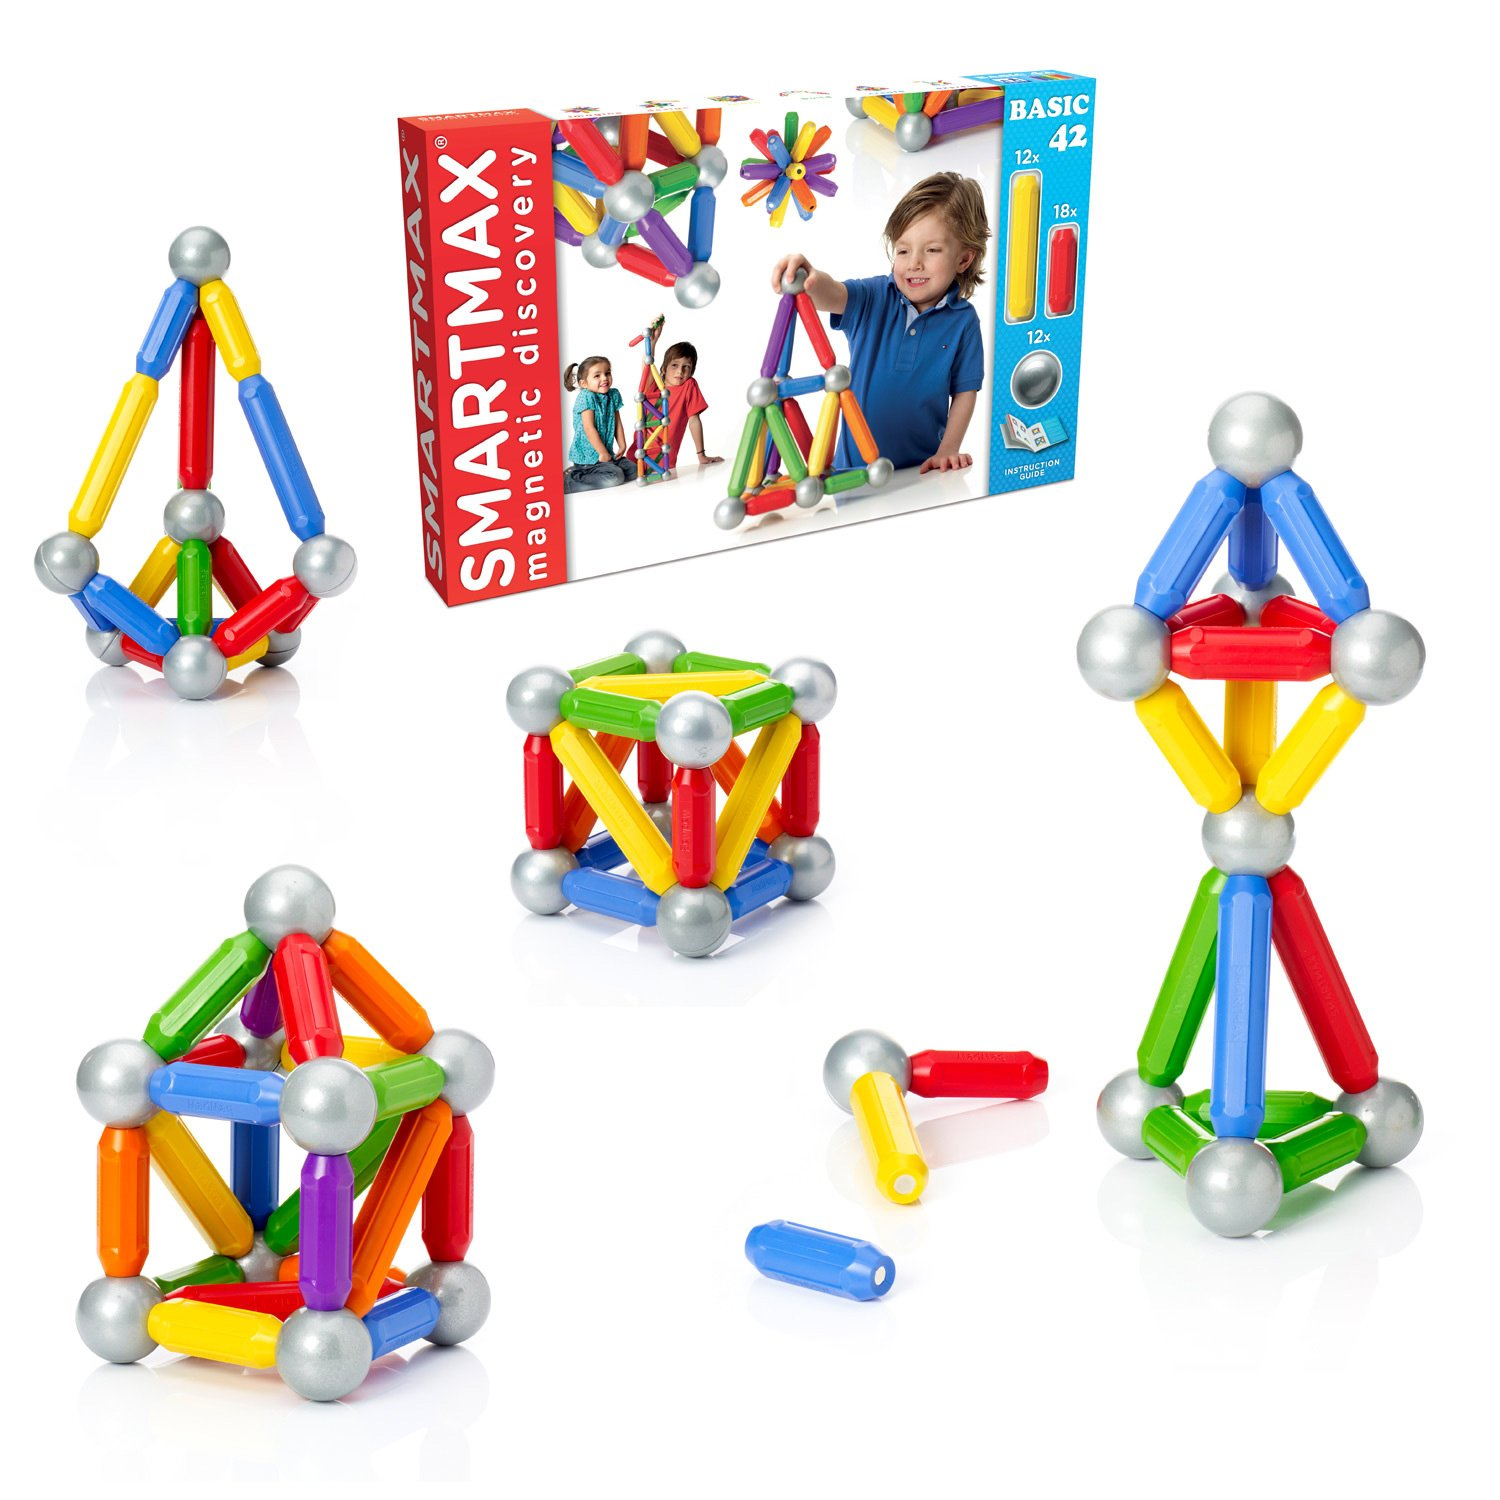 SmartMax Basic 42 Piece Construction Kit Amazon Toys & Games